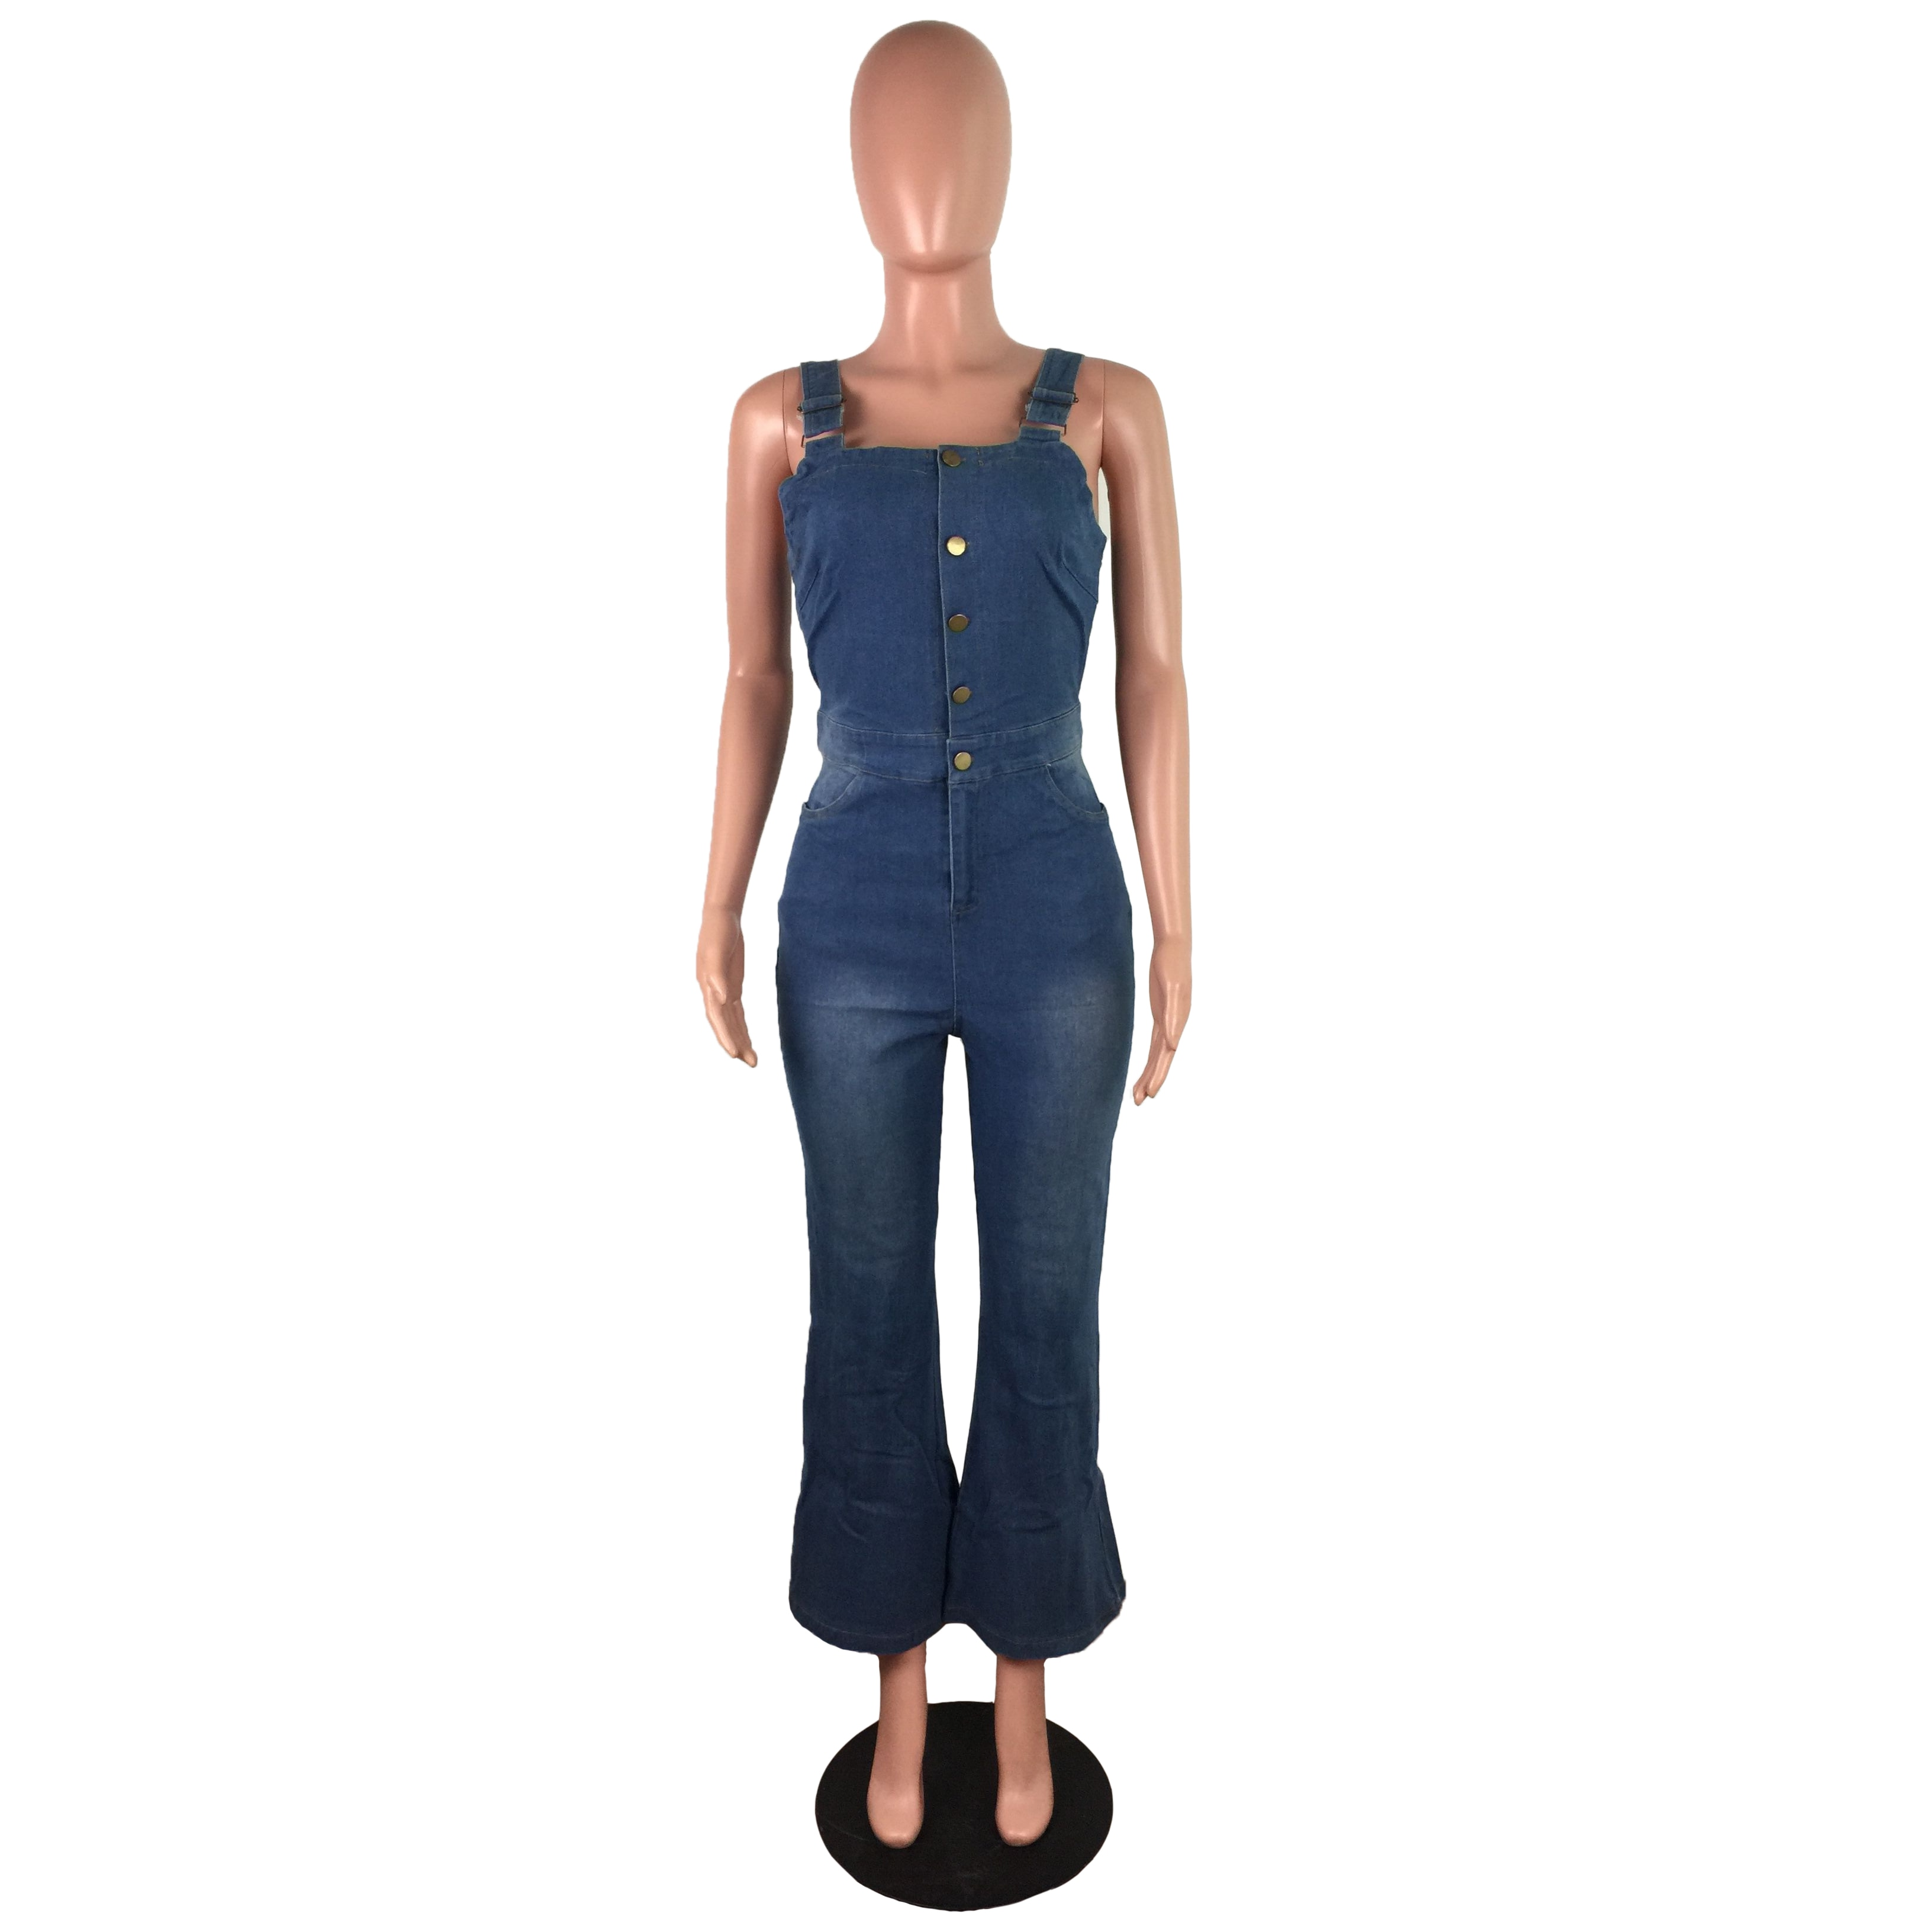 Fashion new style all-match personality jumpsuit with white spray sexy sling jumpsuit denim pants, grunge jeans ,women pants enlarge